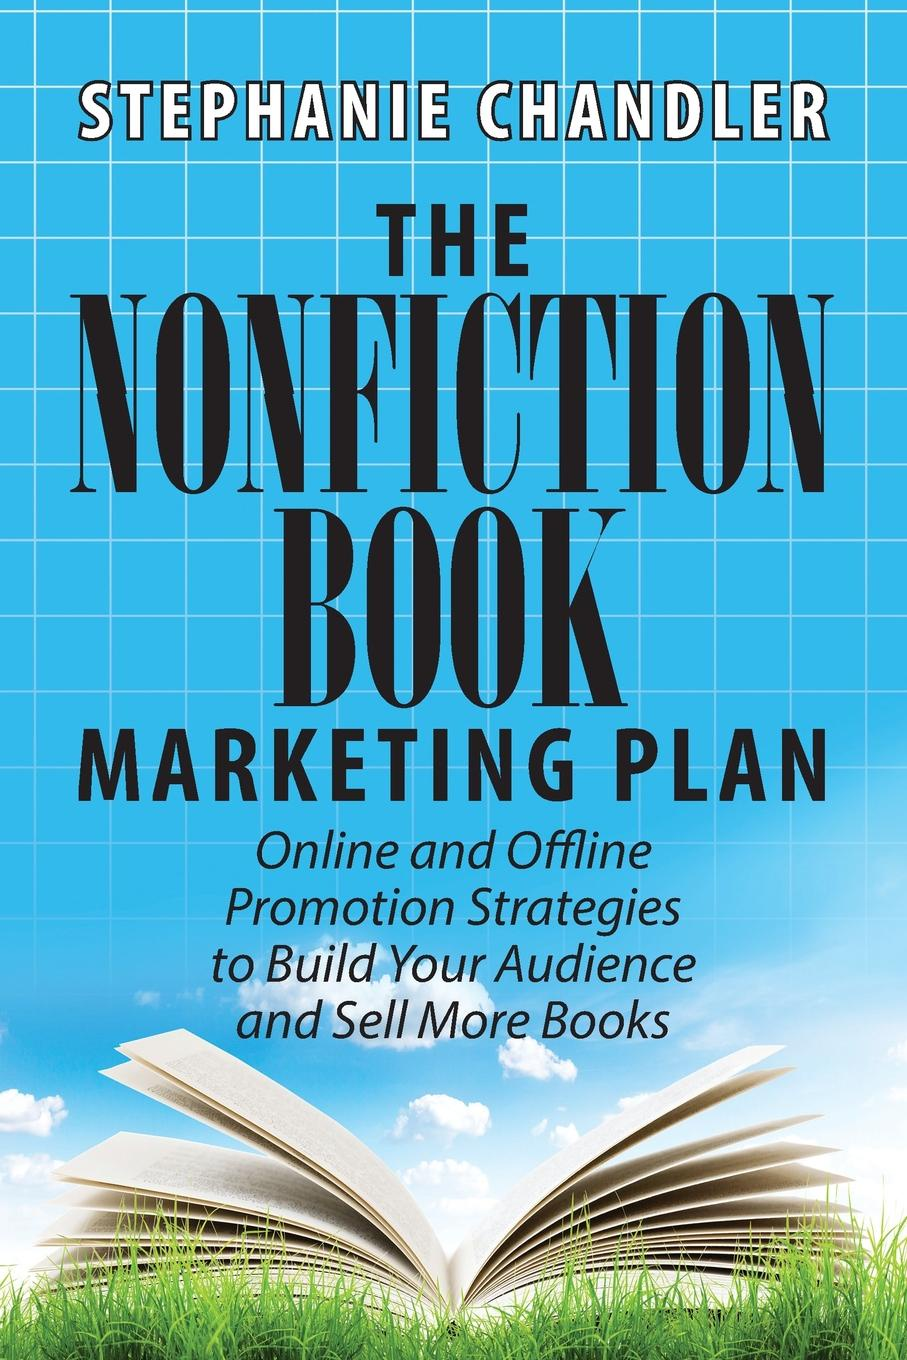 Stephanie Chandler The Nonfiction Book Marketing Plan. Online and Offline Promotion Strategies to Build Your Audience and Sell More Books patrick schwerdtfeger marketing shortcuts for the self employed leverage resources establish online credibility and crush your competition